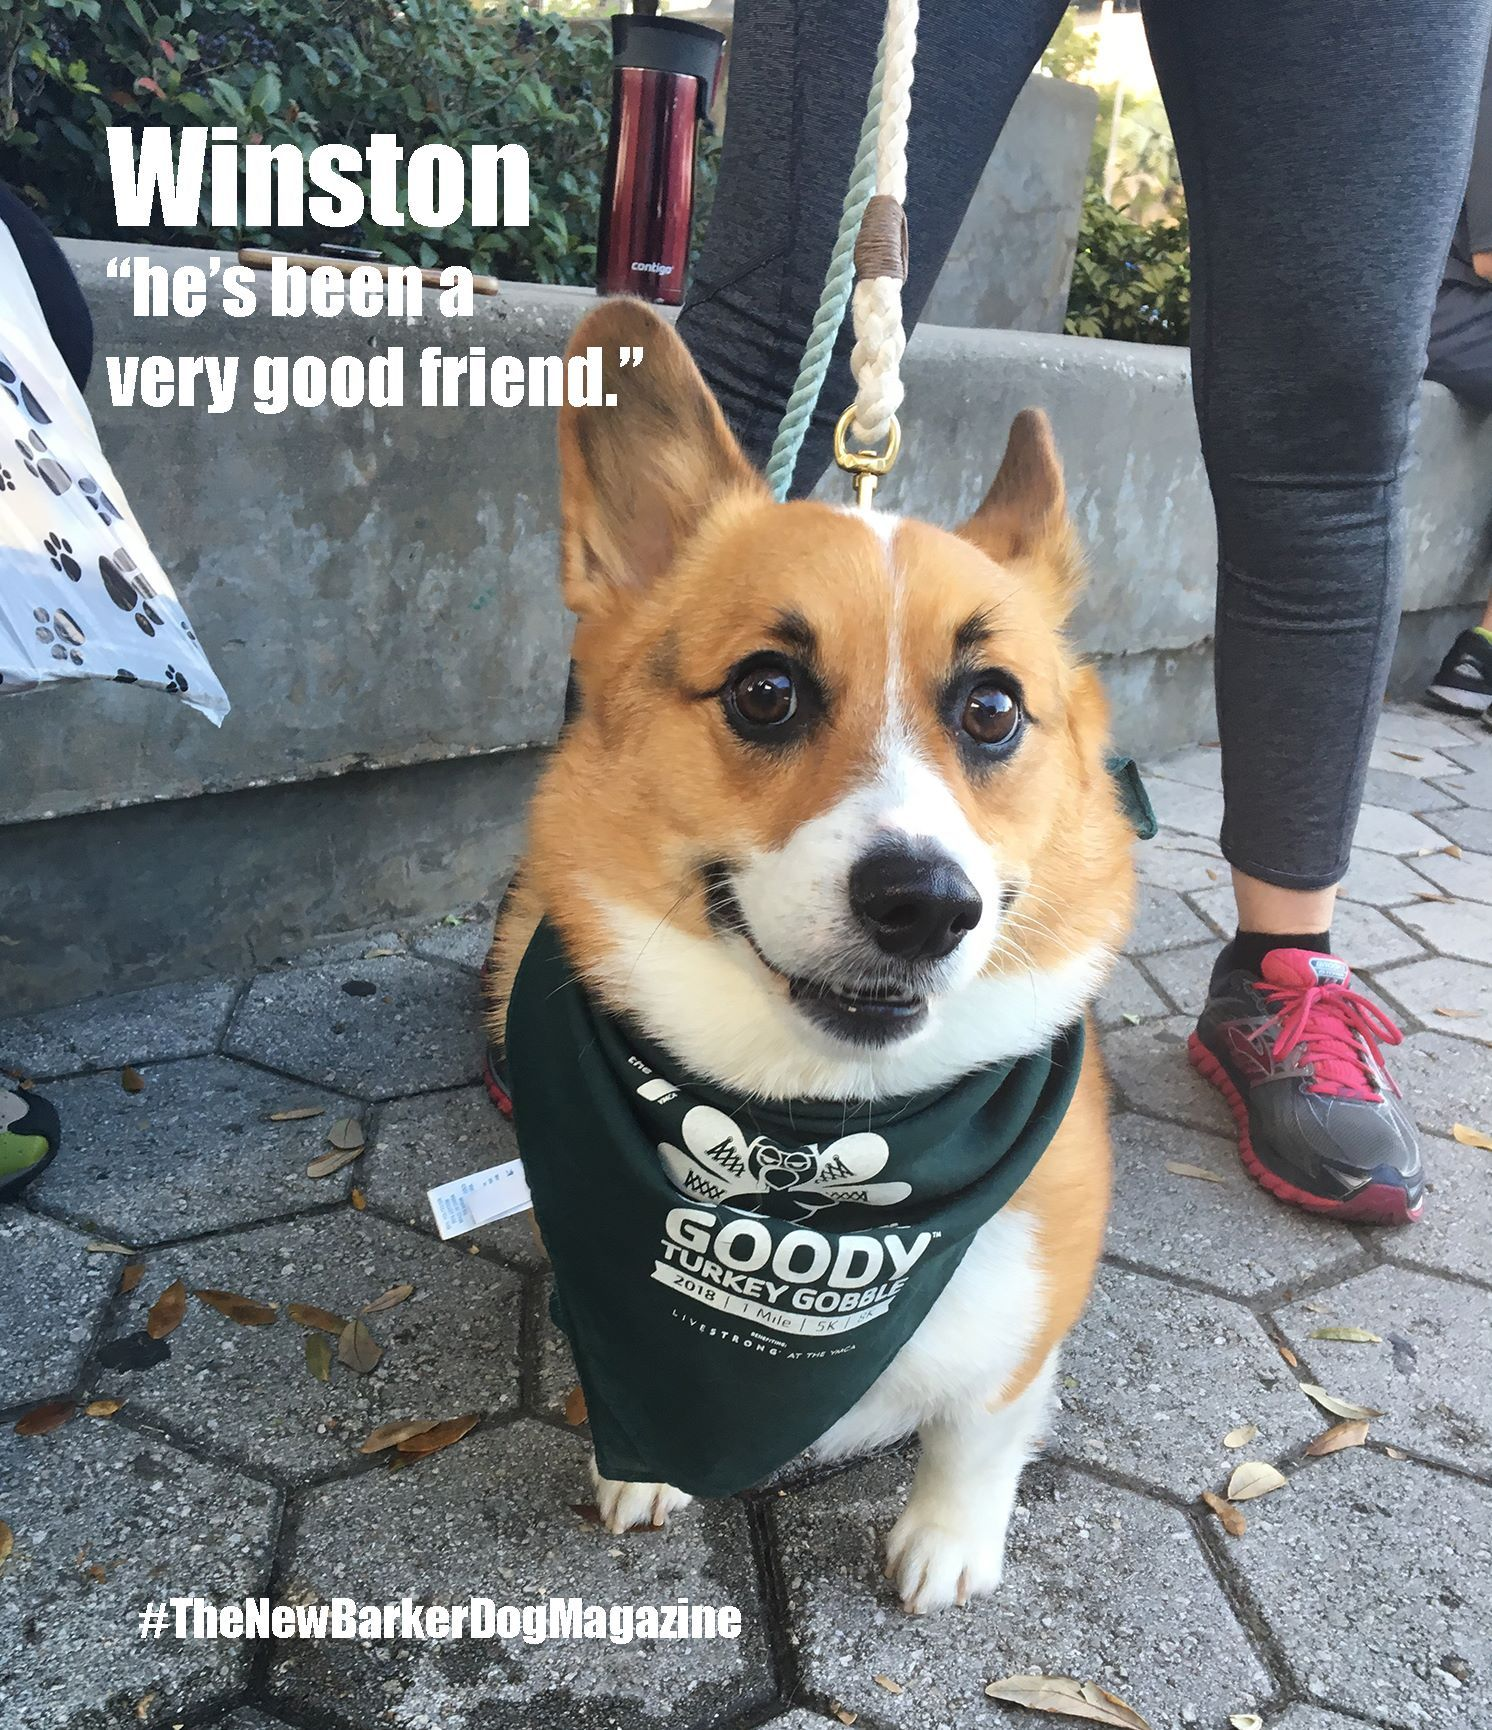 We Kicked Off Our Thanksgiving Day At The 2018 Goody Goody Turkey Gobble An 8k 5k And 1 Mile Walk Outside Amalie Arena Great Weather Dog Friends Dogs Corgi